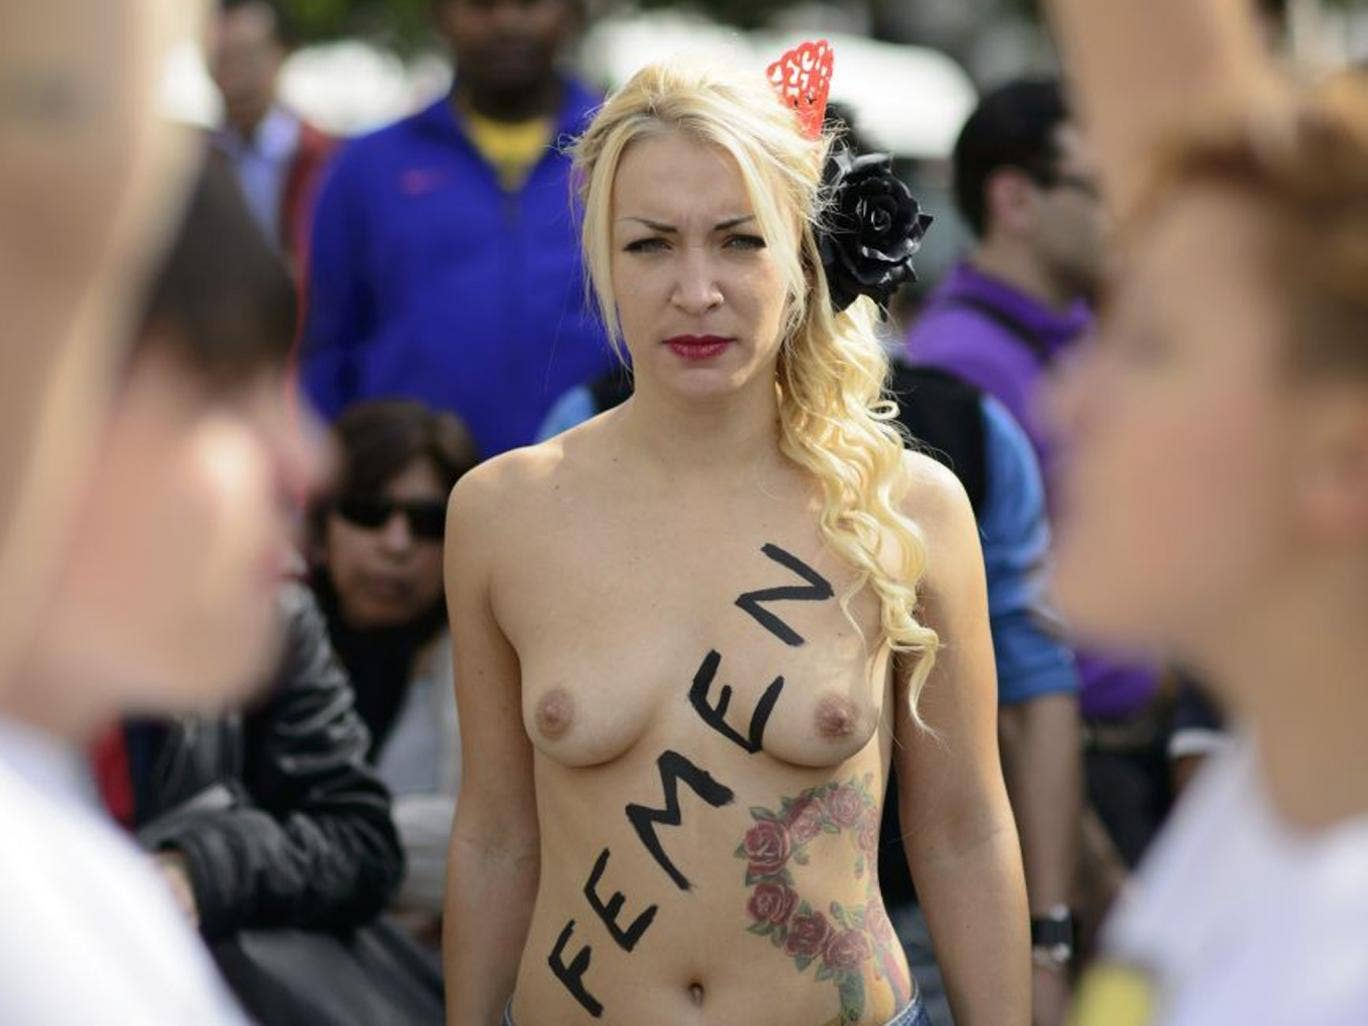 It remains unclear whether 'Femen' will include the nudity so associated with its subject on its front cover